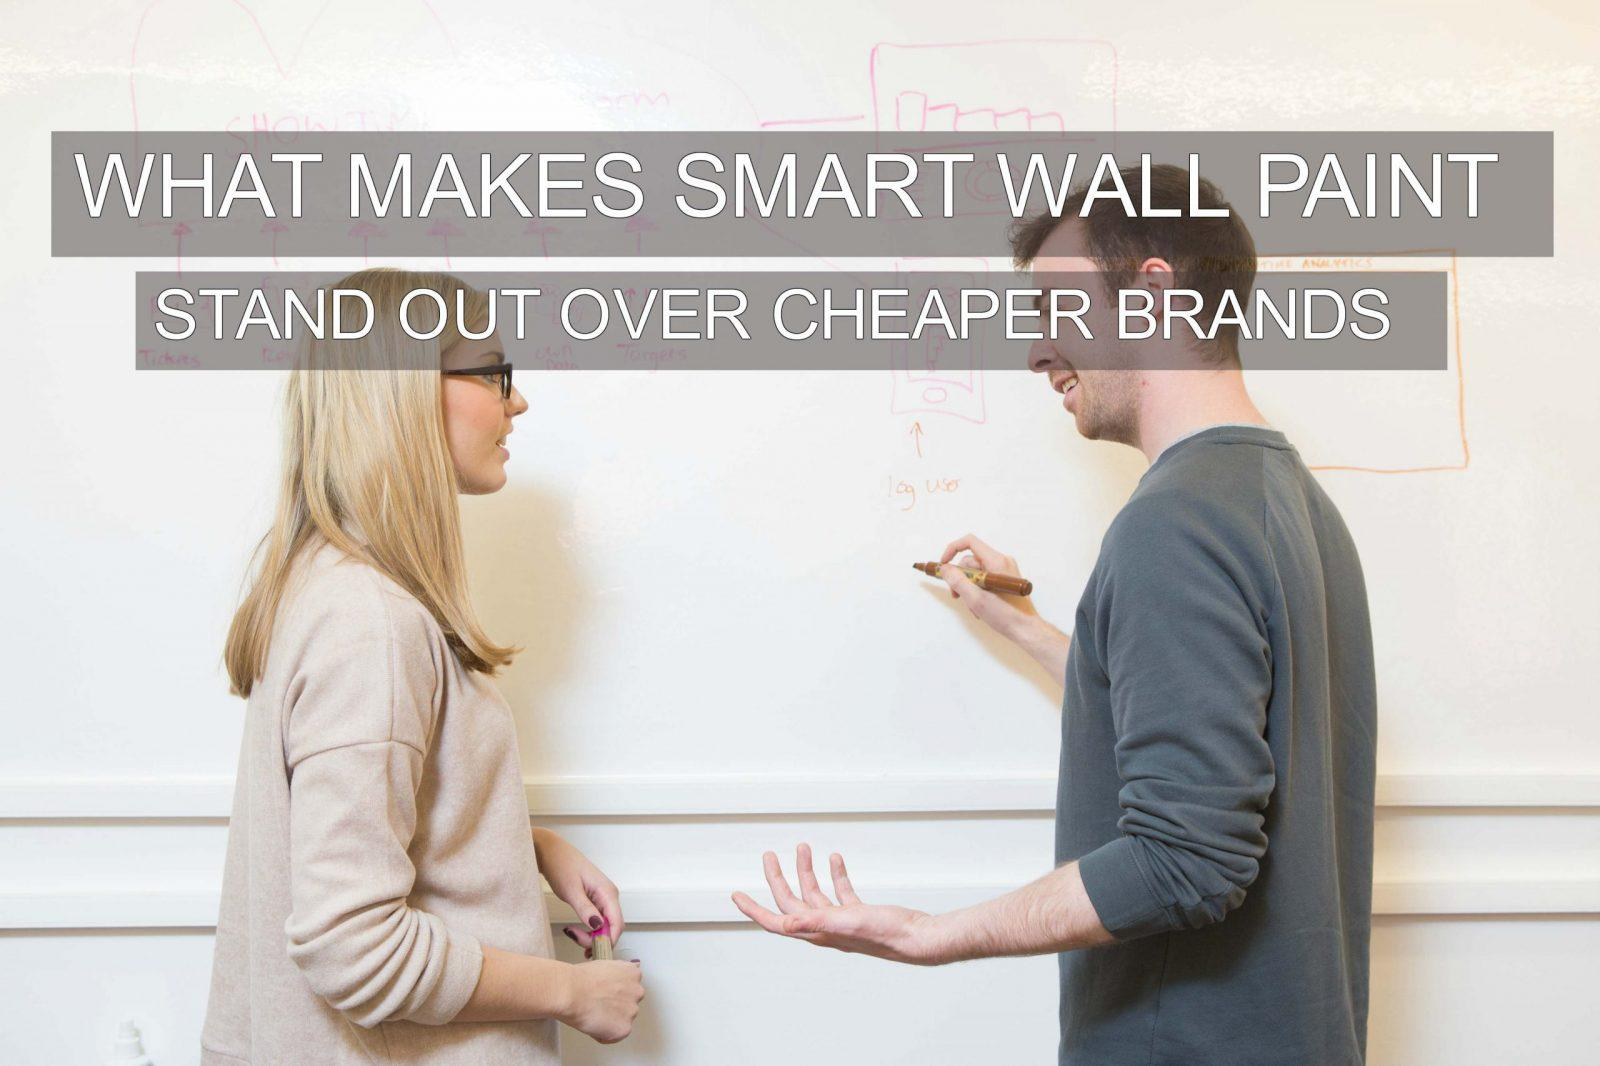 whiteboardwallcoveringteamworkofficebusinesserasable smartwall paint scaled